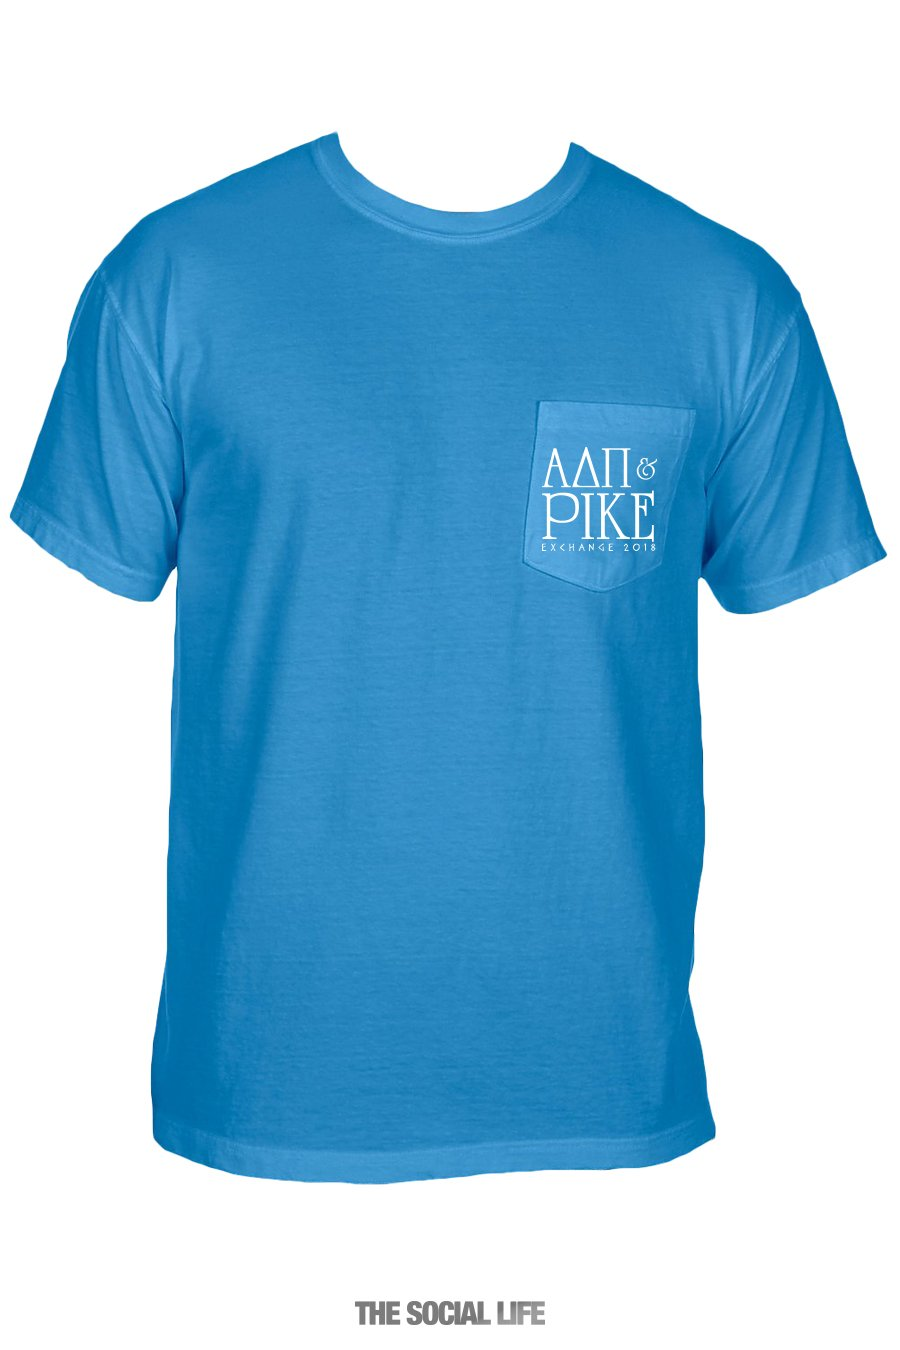 ADPI & Pike Exchange Tees